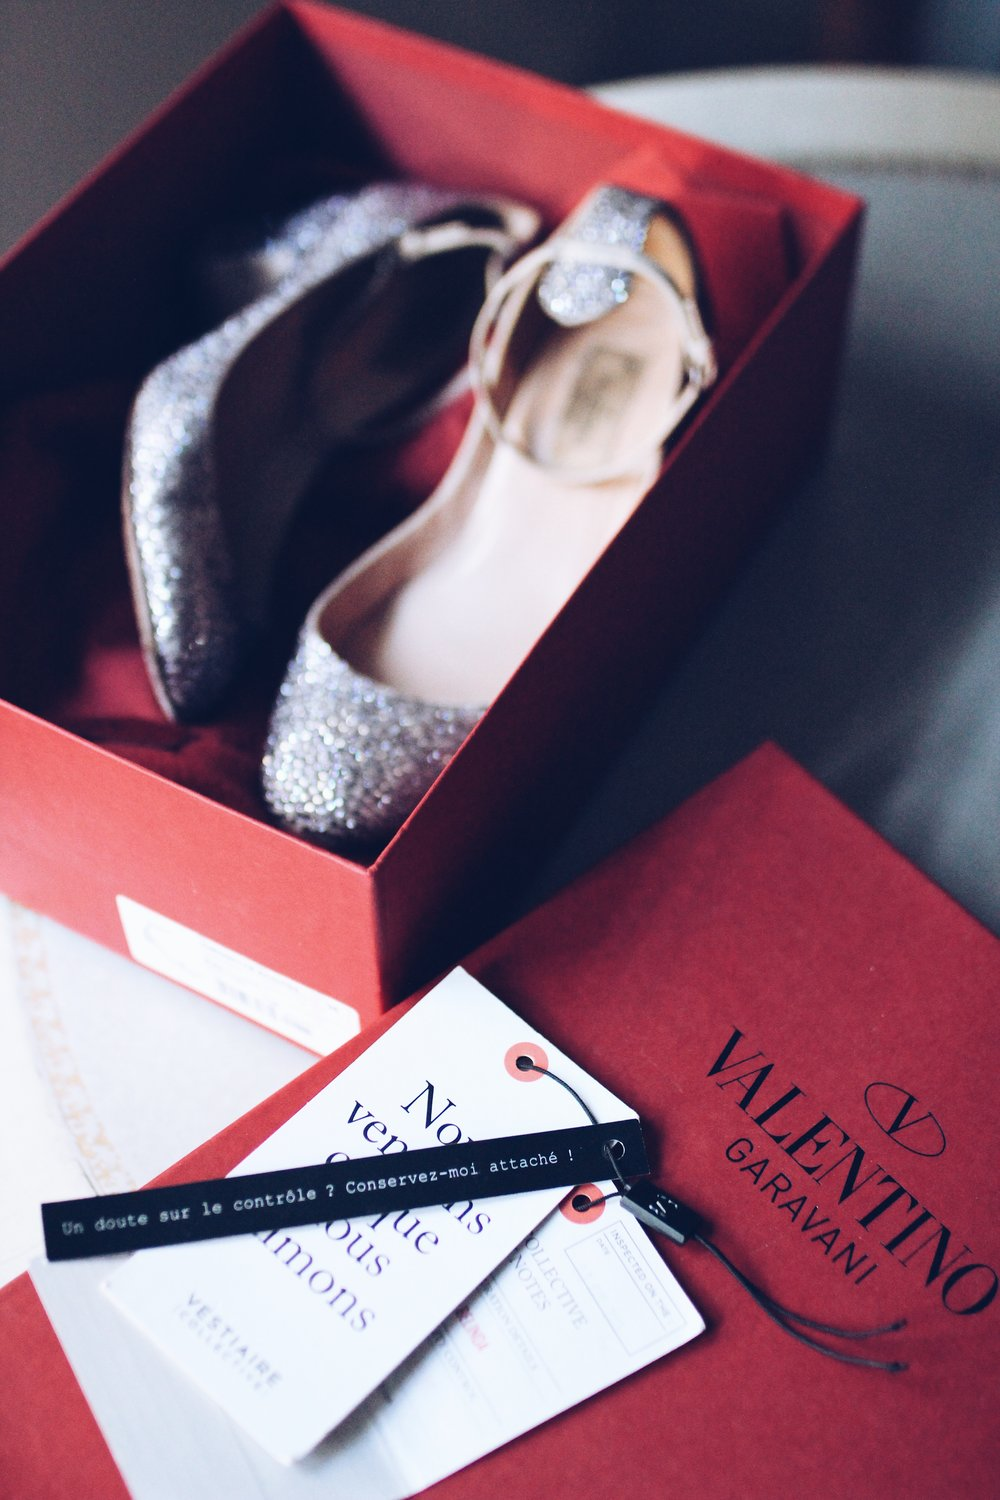 My Valentino Tango heels bought from Vestiaire Collective for my wedding in February 2016.